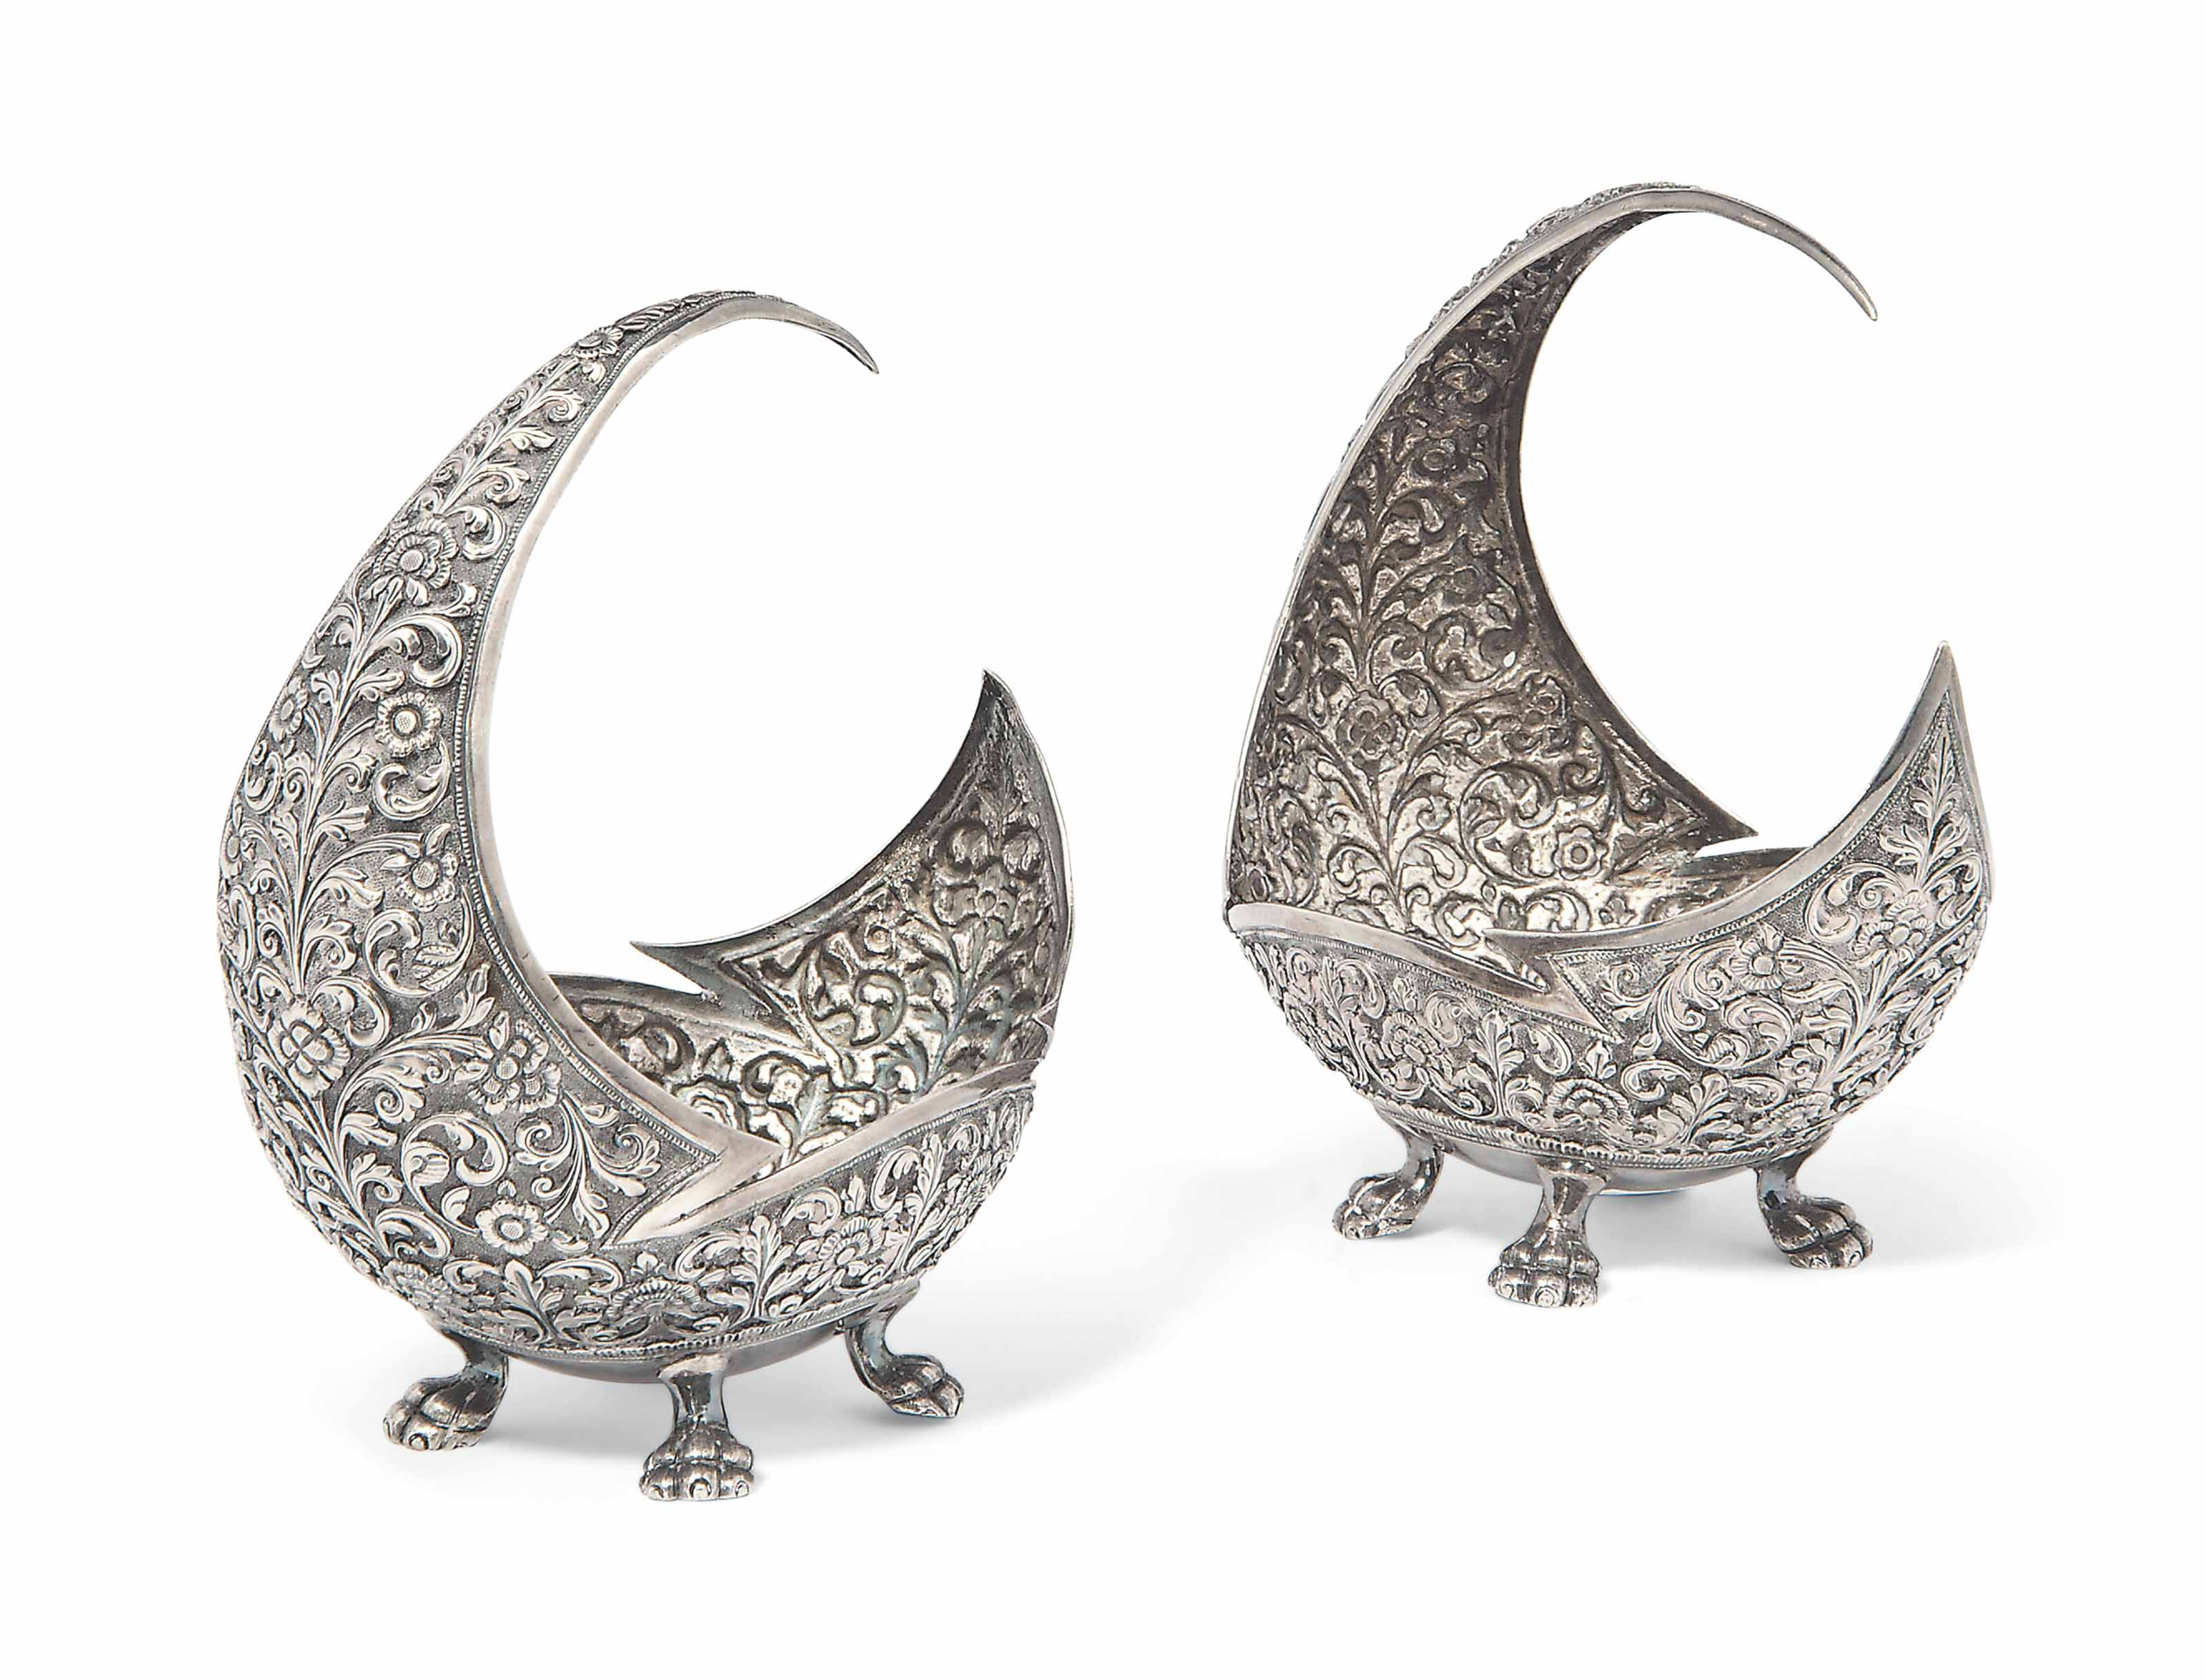 A PAIR OF SILVER REPOUSSÉ SWEE